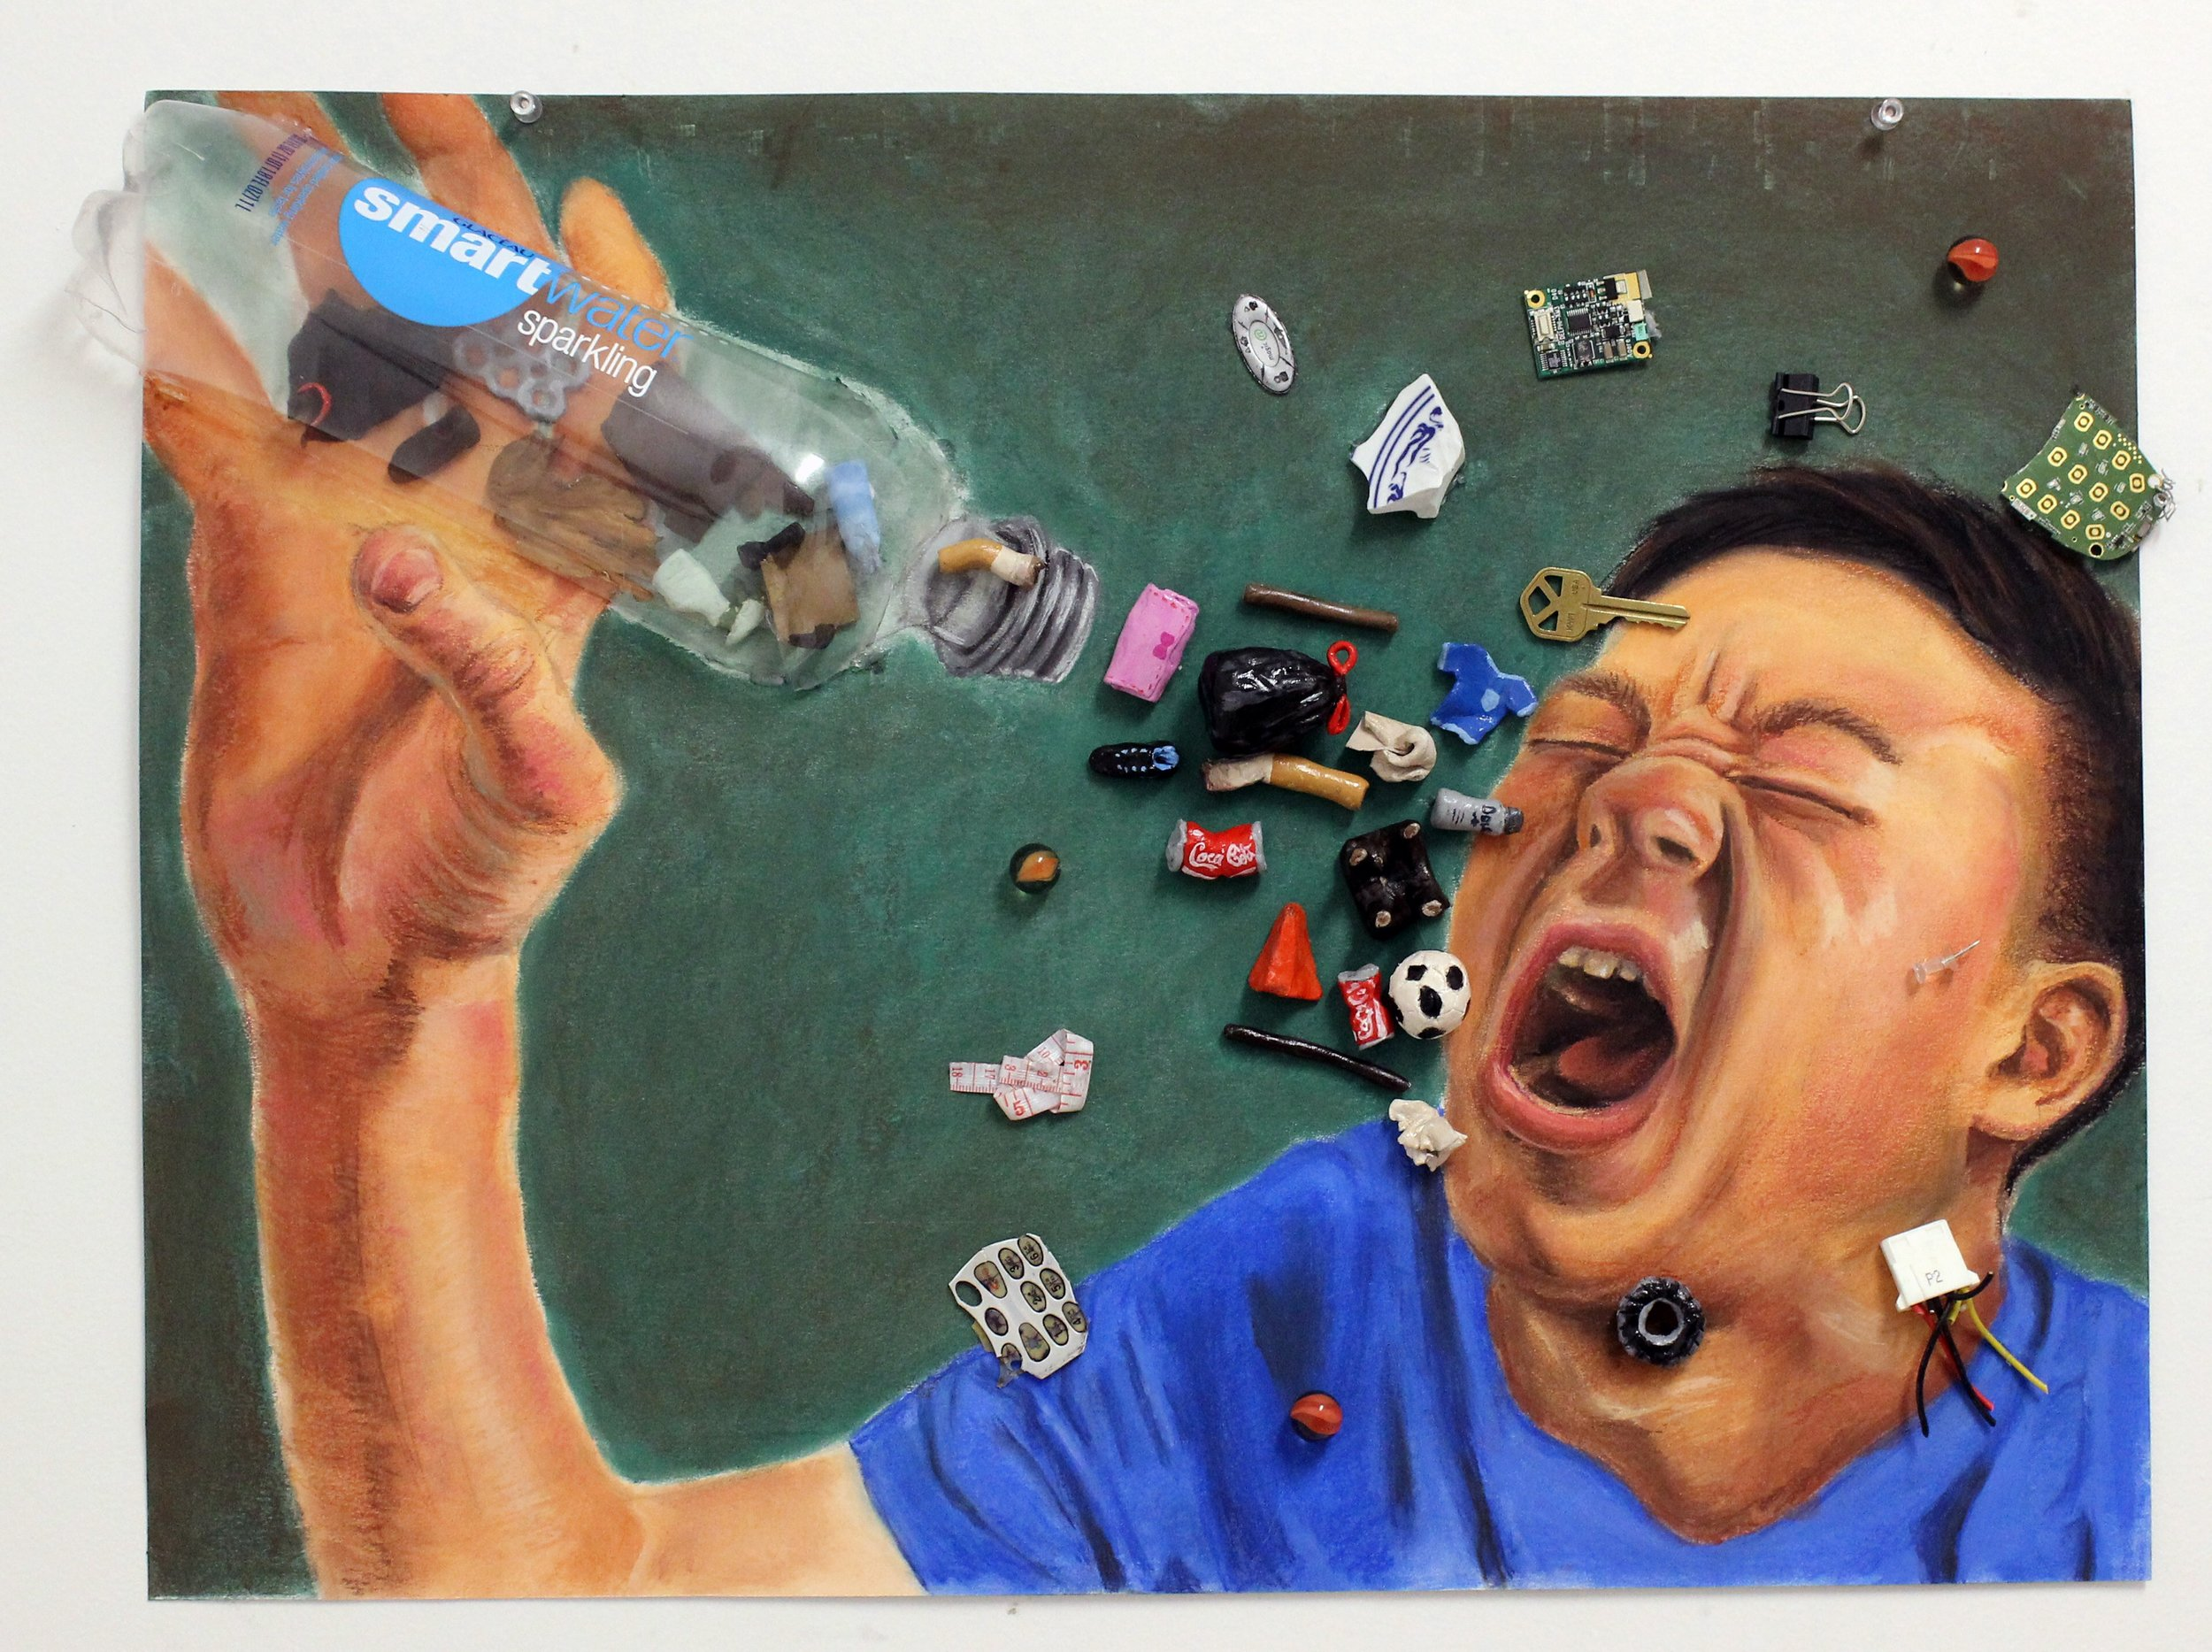 What We Drink (soft pastel and acrylic paint) - Justin Kim